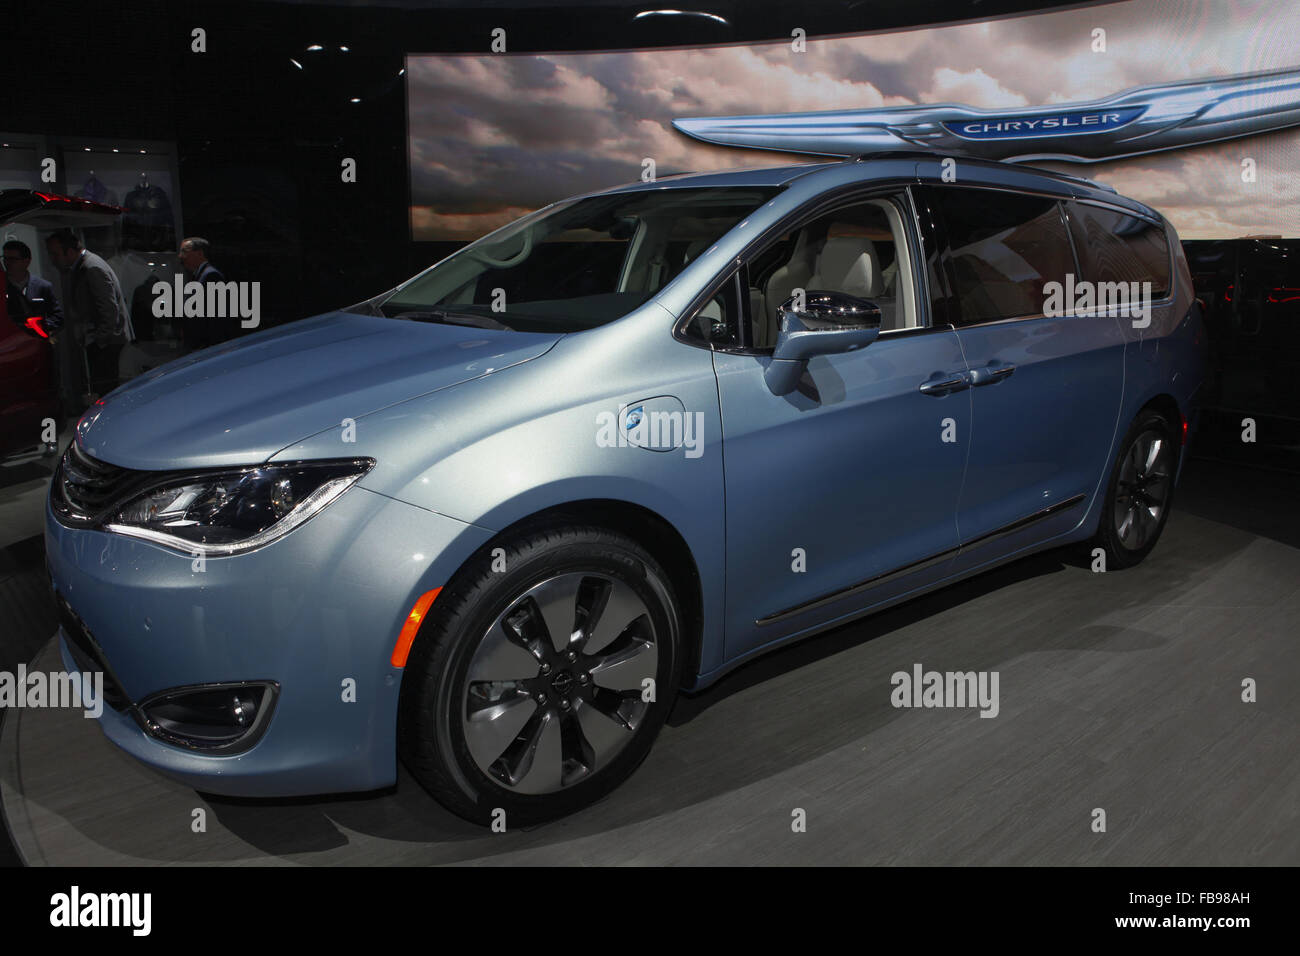 chrysler due year in town later country pacifica reboot next report a s gen news